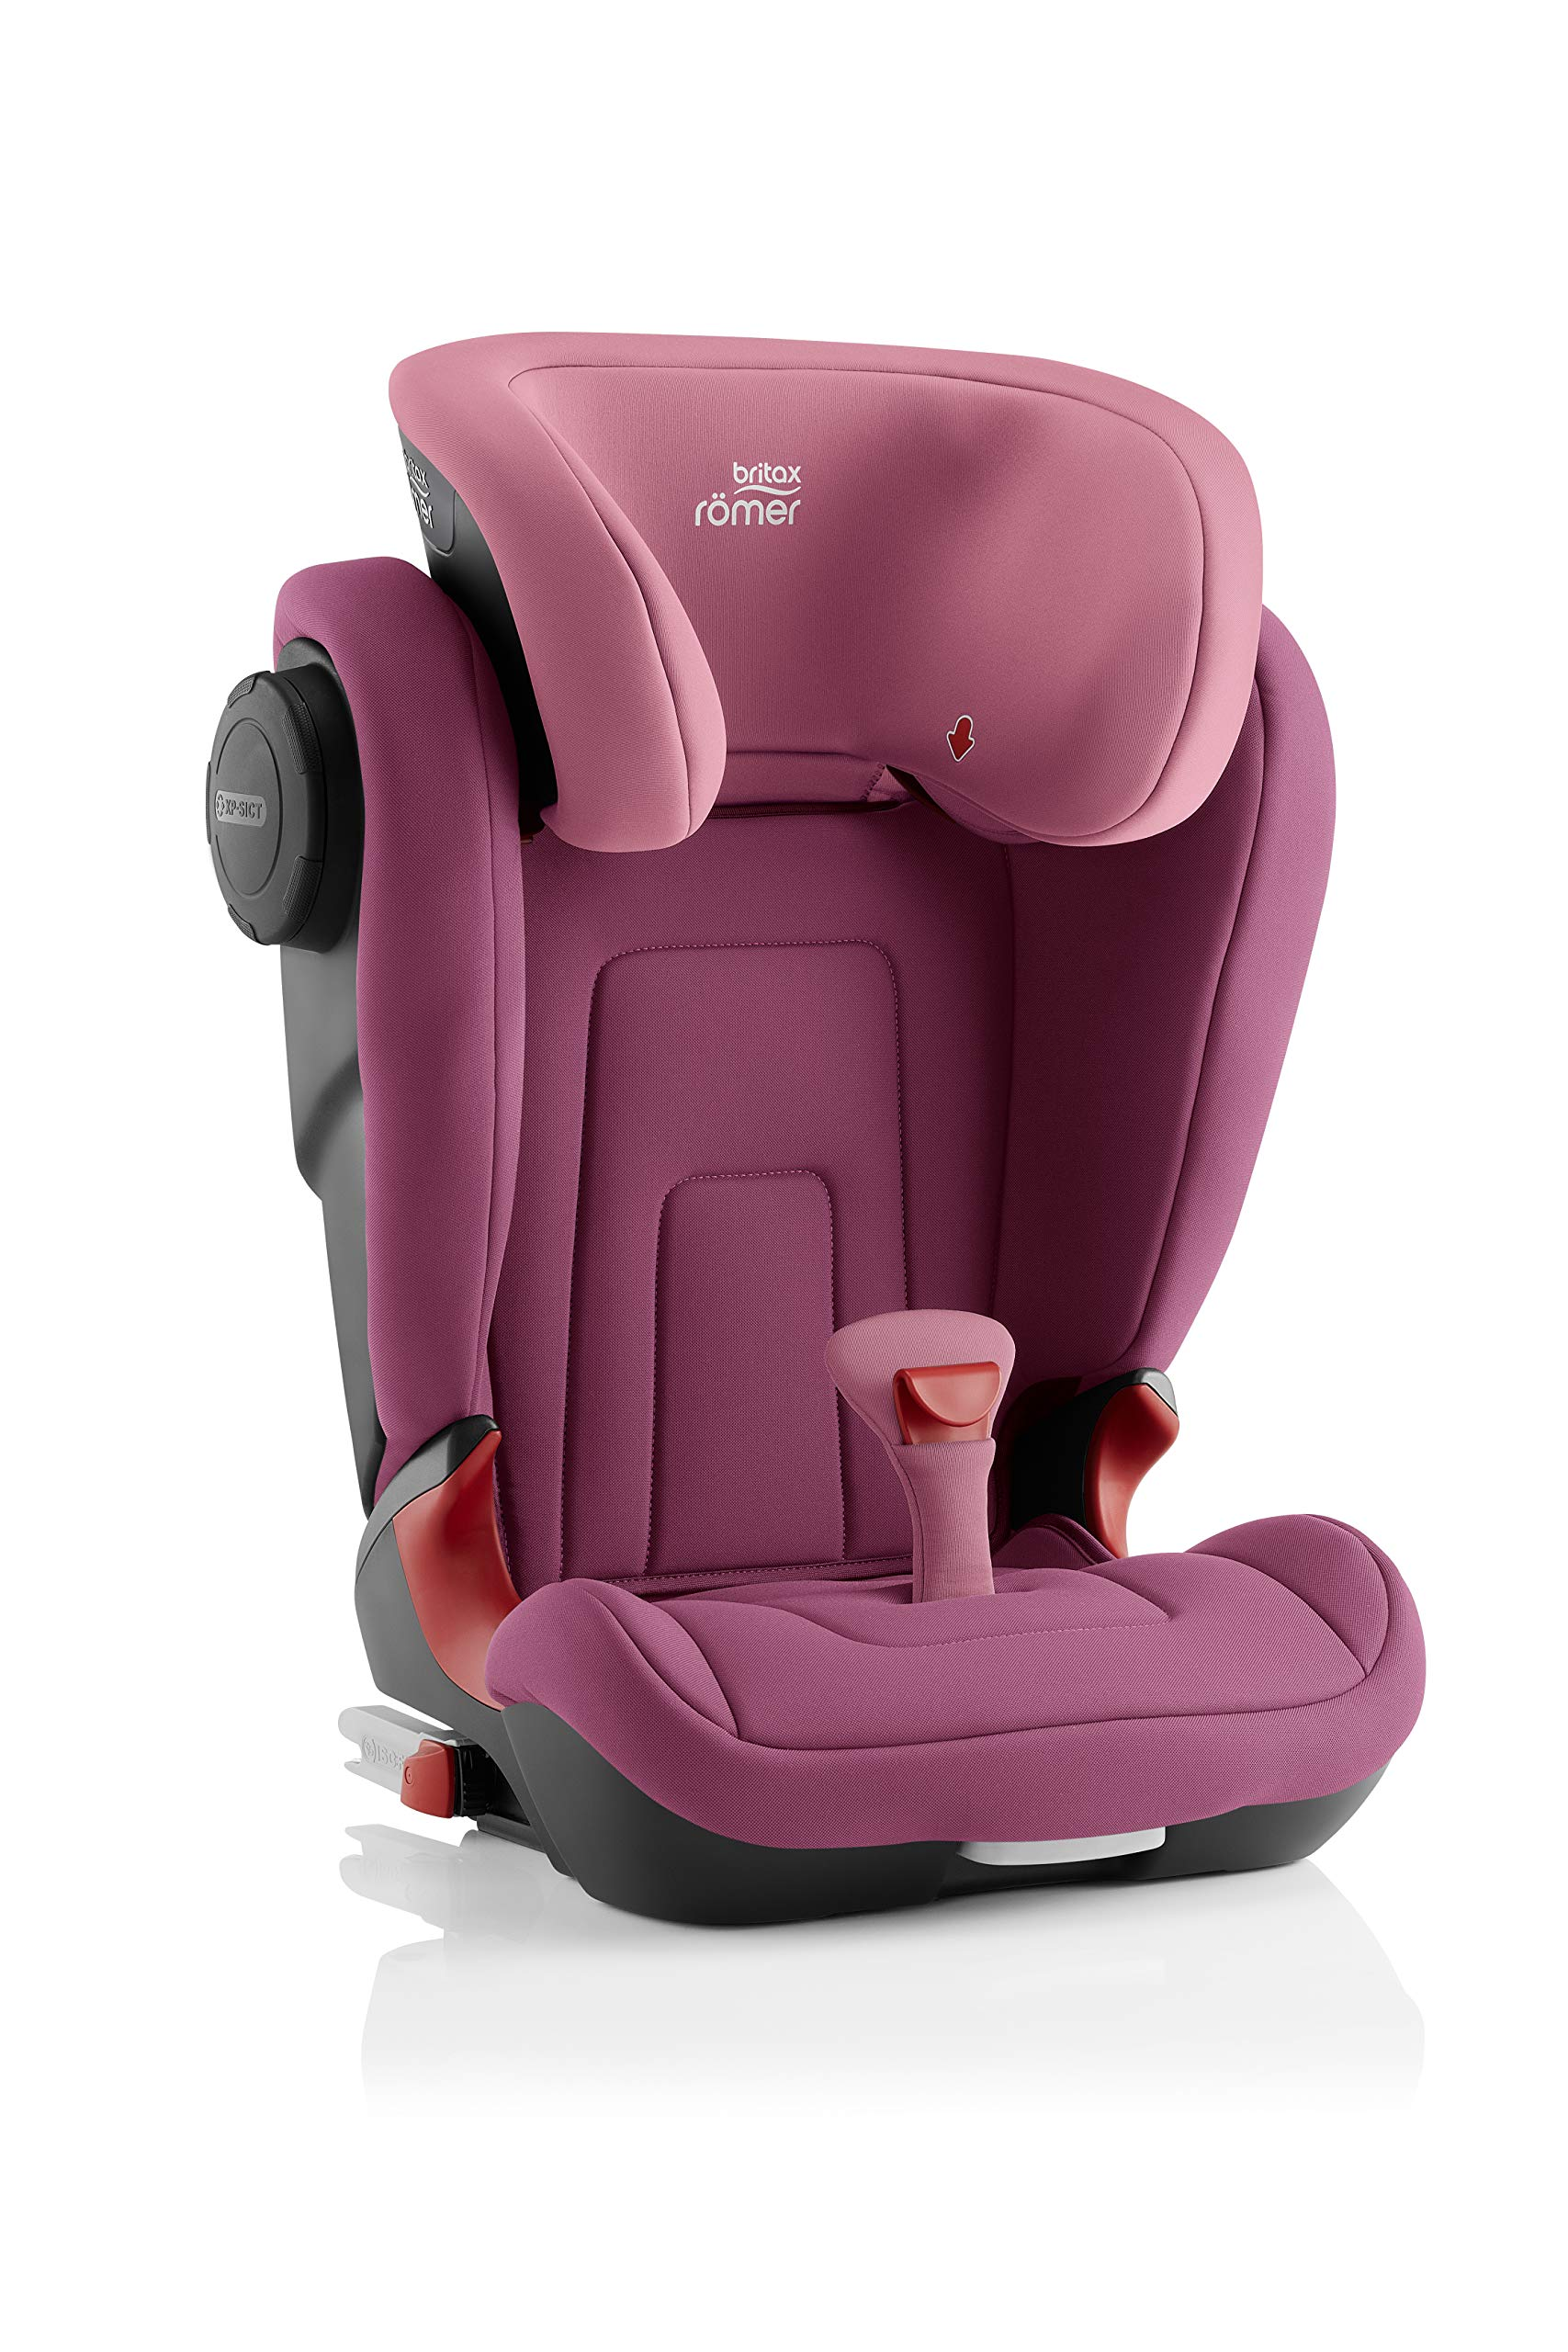 Britax Römer KIDFIX² S Group 2-3 (15-36kg) Car Seat - Wine Rose  Advanced side impact protection - sict offers superior protection to your child in the event of a side collision. reducing impact forces by minimising the distance between the car and the car seat. Secure guard - helps to protect your child's delicate abdominal area by adding an extra - a 4th - contact point to the 3-point seat belt. High back booster - protects your child in 3 ways: provides head to hip protection; belt guides provide correct positioning of the seat belt and the padded headrest provides safety and comfort. 3